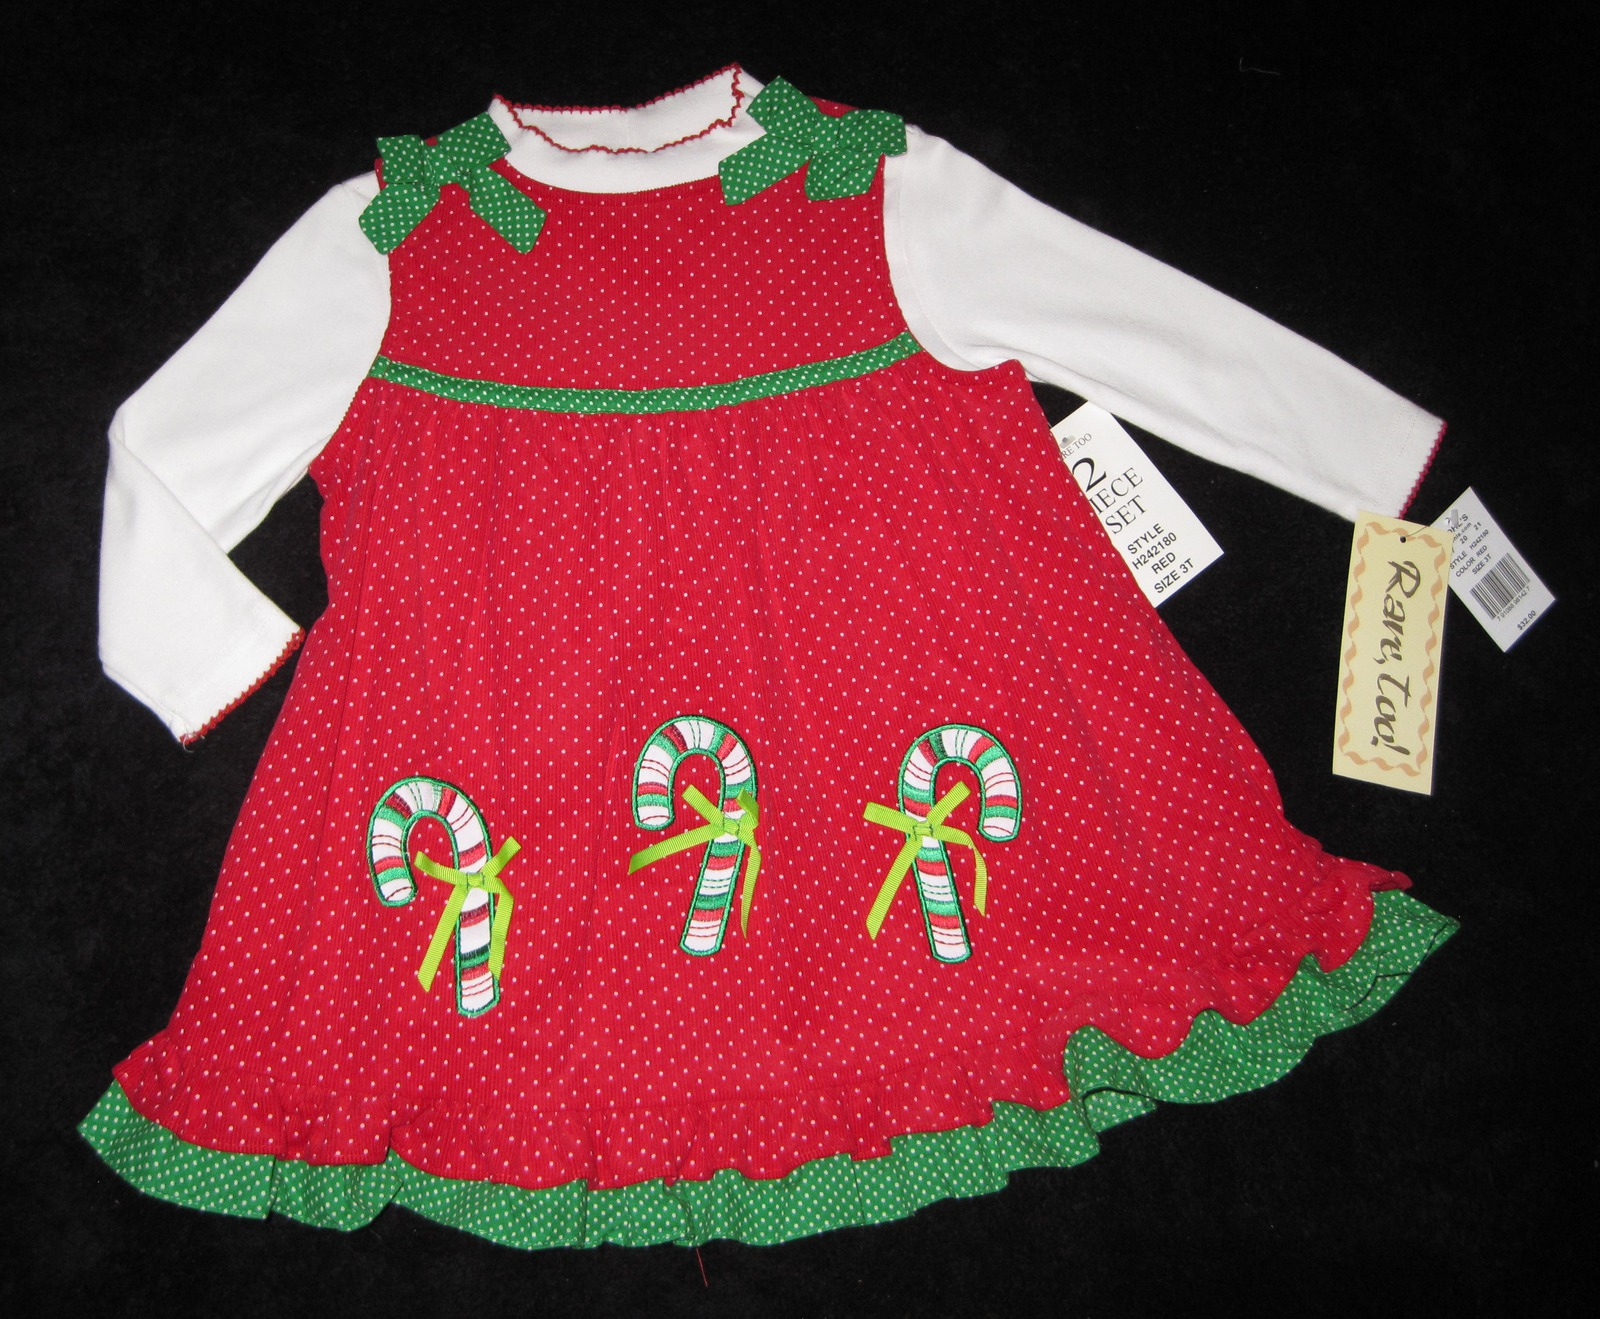 GIRLS 4T - Rare Too -  Candy Canes on Red Corduroy HOLIDAY JUMPER SET image 2